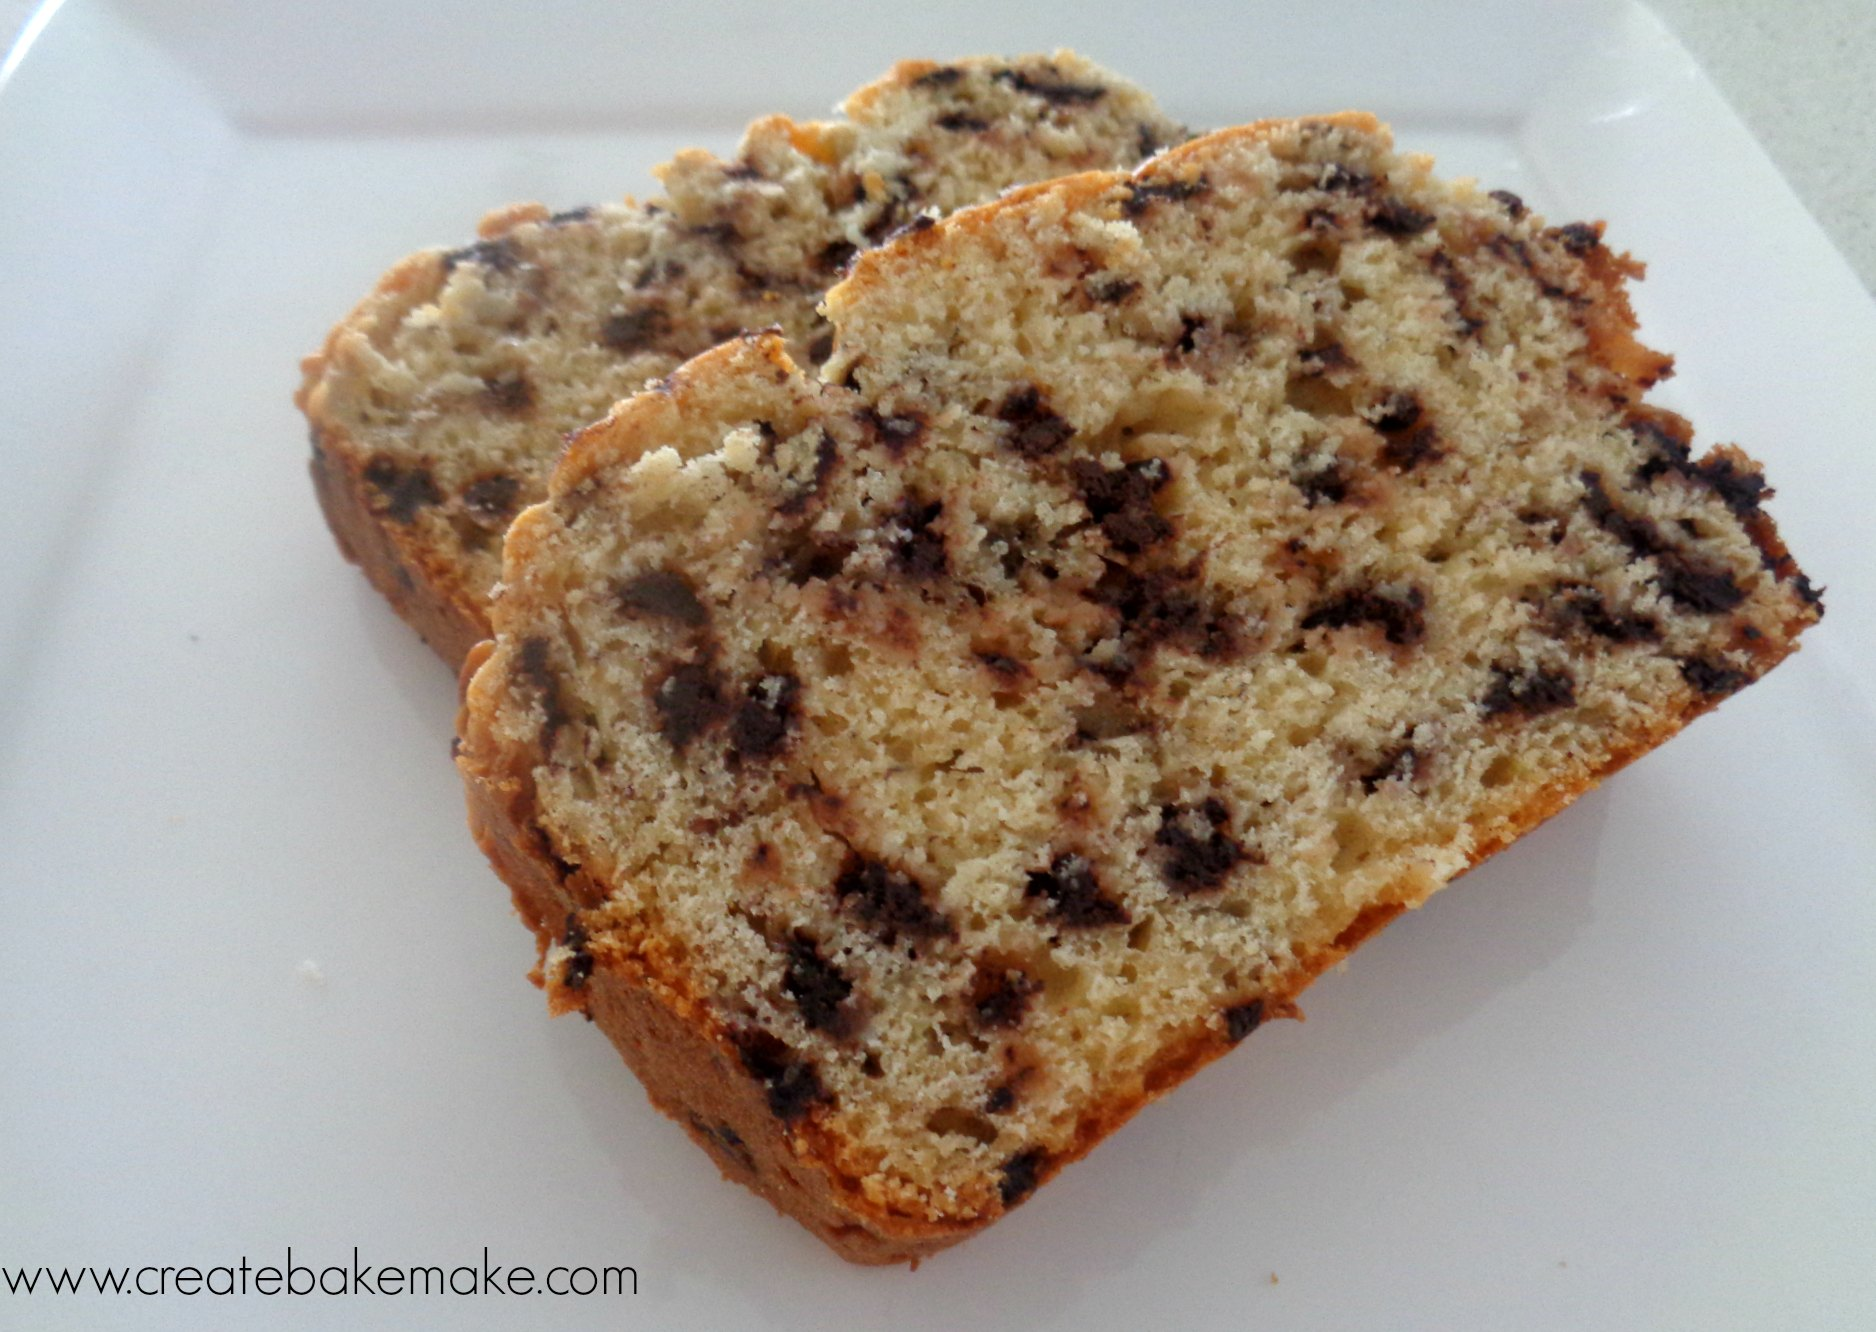 Chocolate Chip Banana Bread (simple and delicious!) - Bake Play Smile